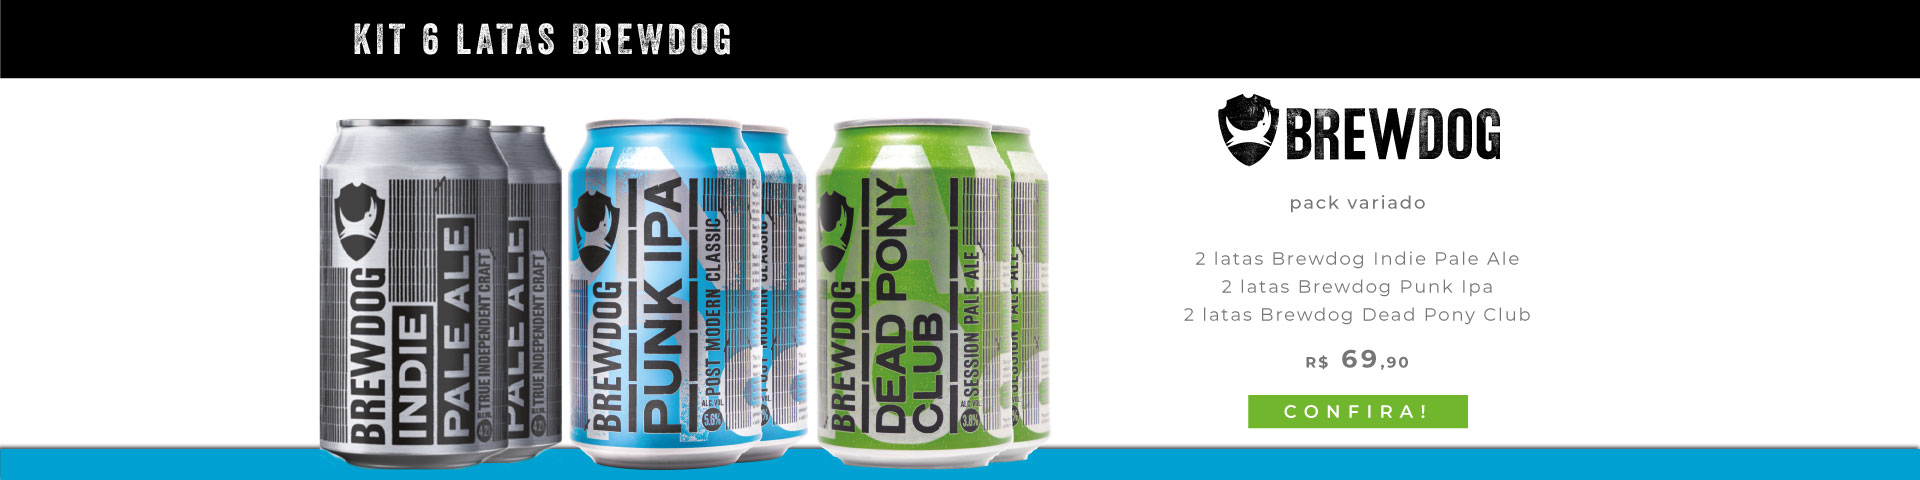 Banner-home-kit-brewdog